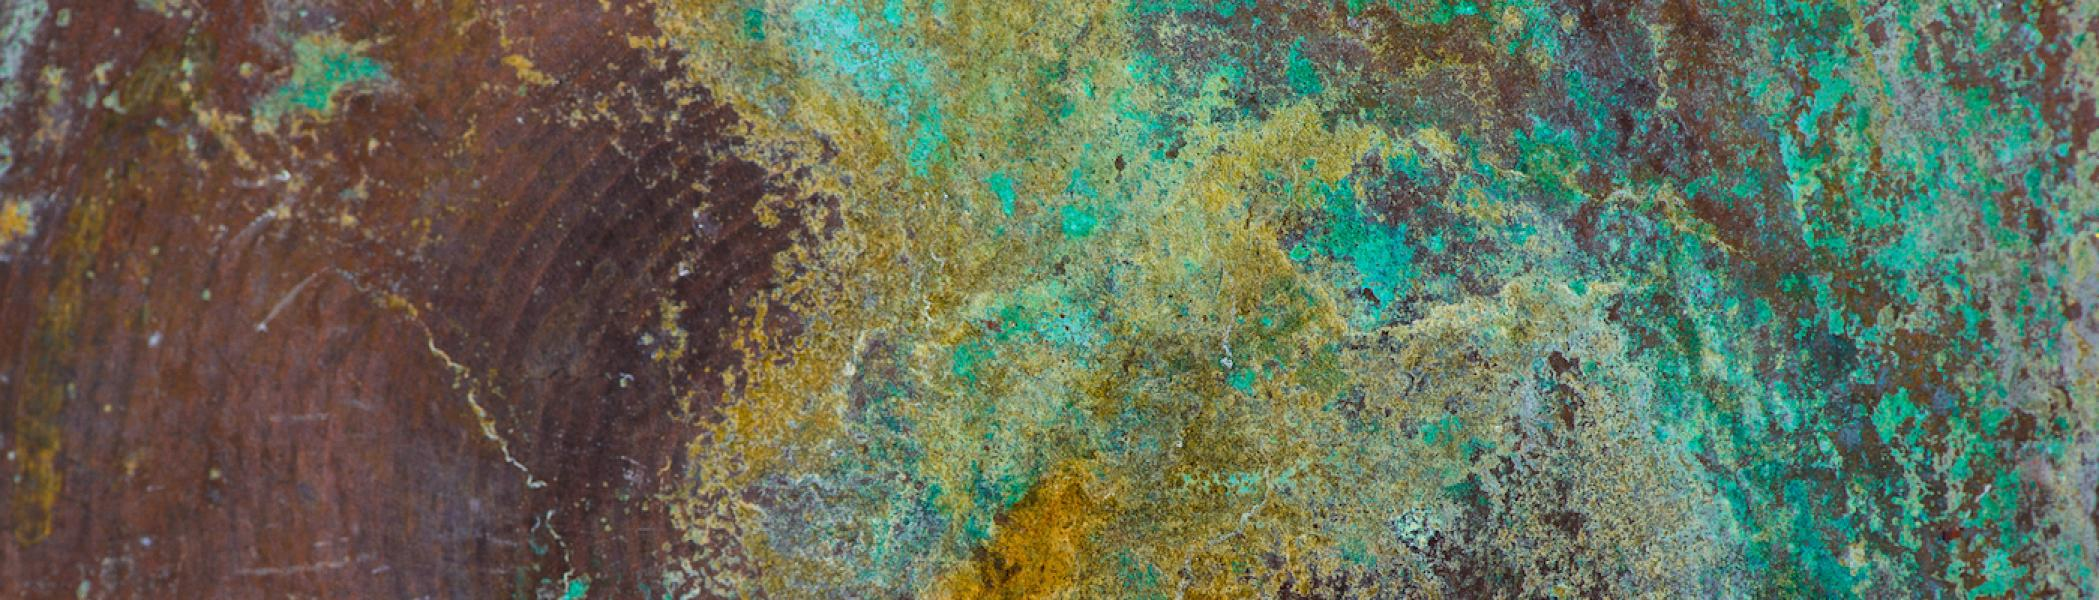 A tin background with blue, green, and gold paint swirled on it.